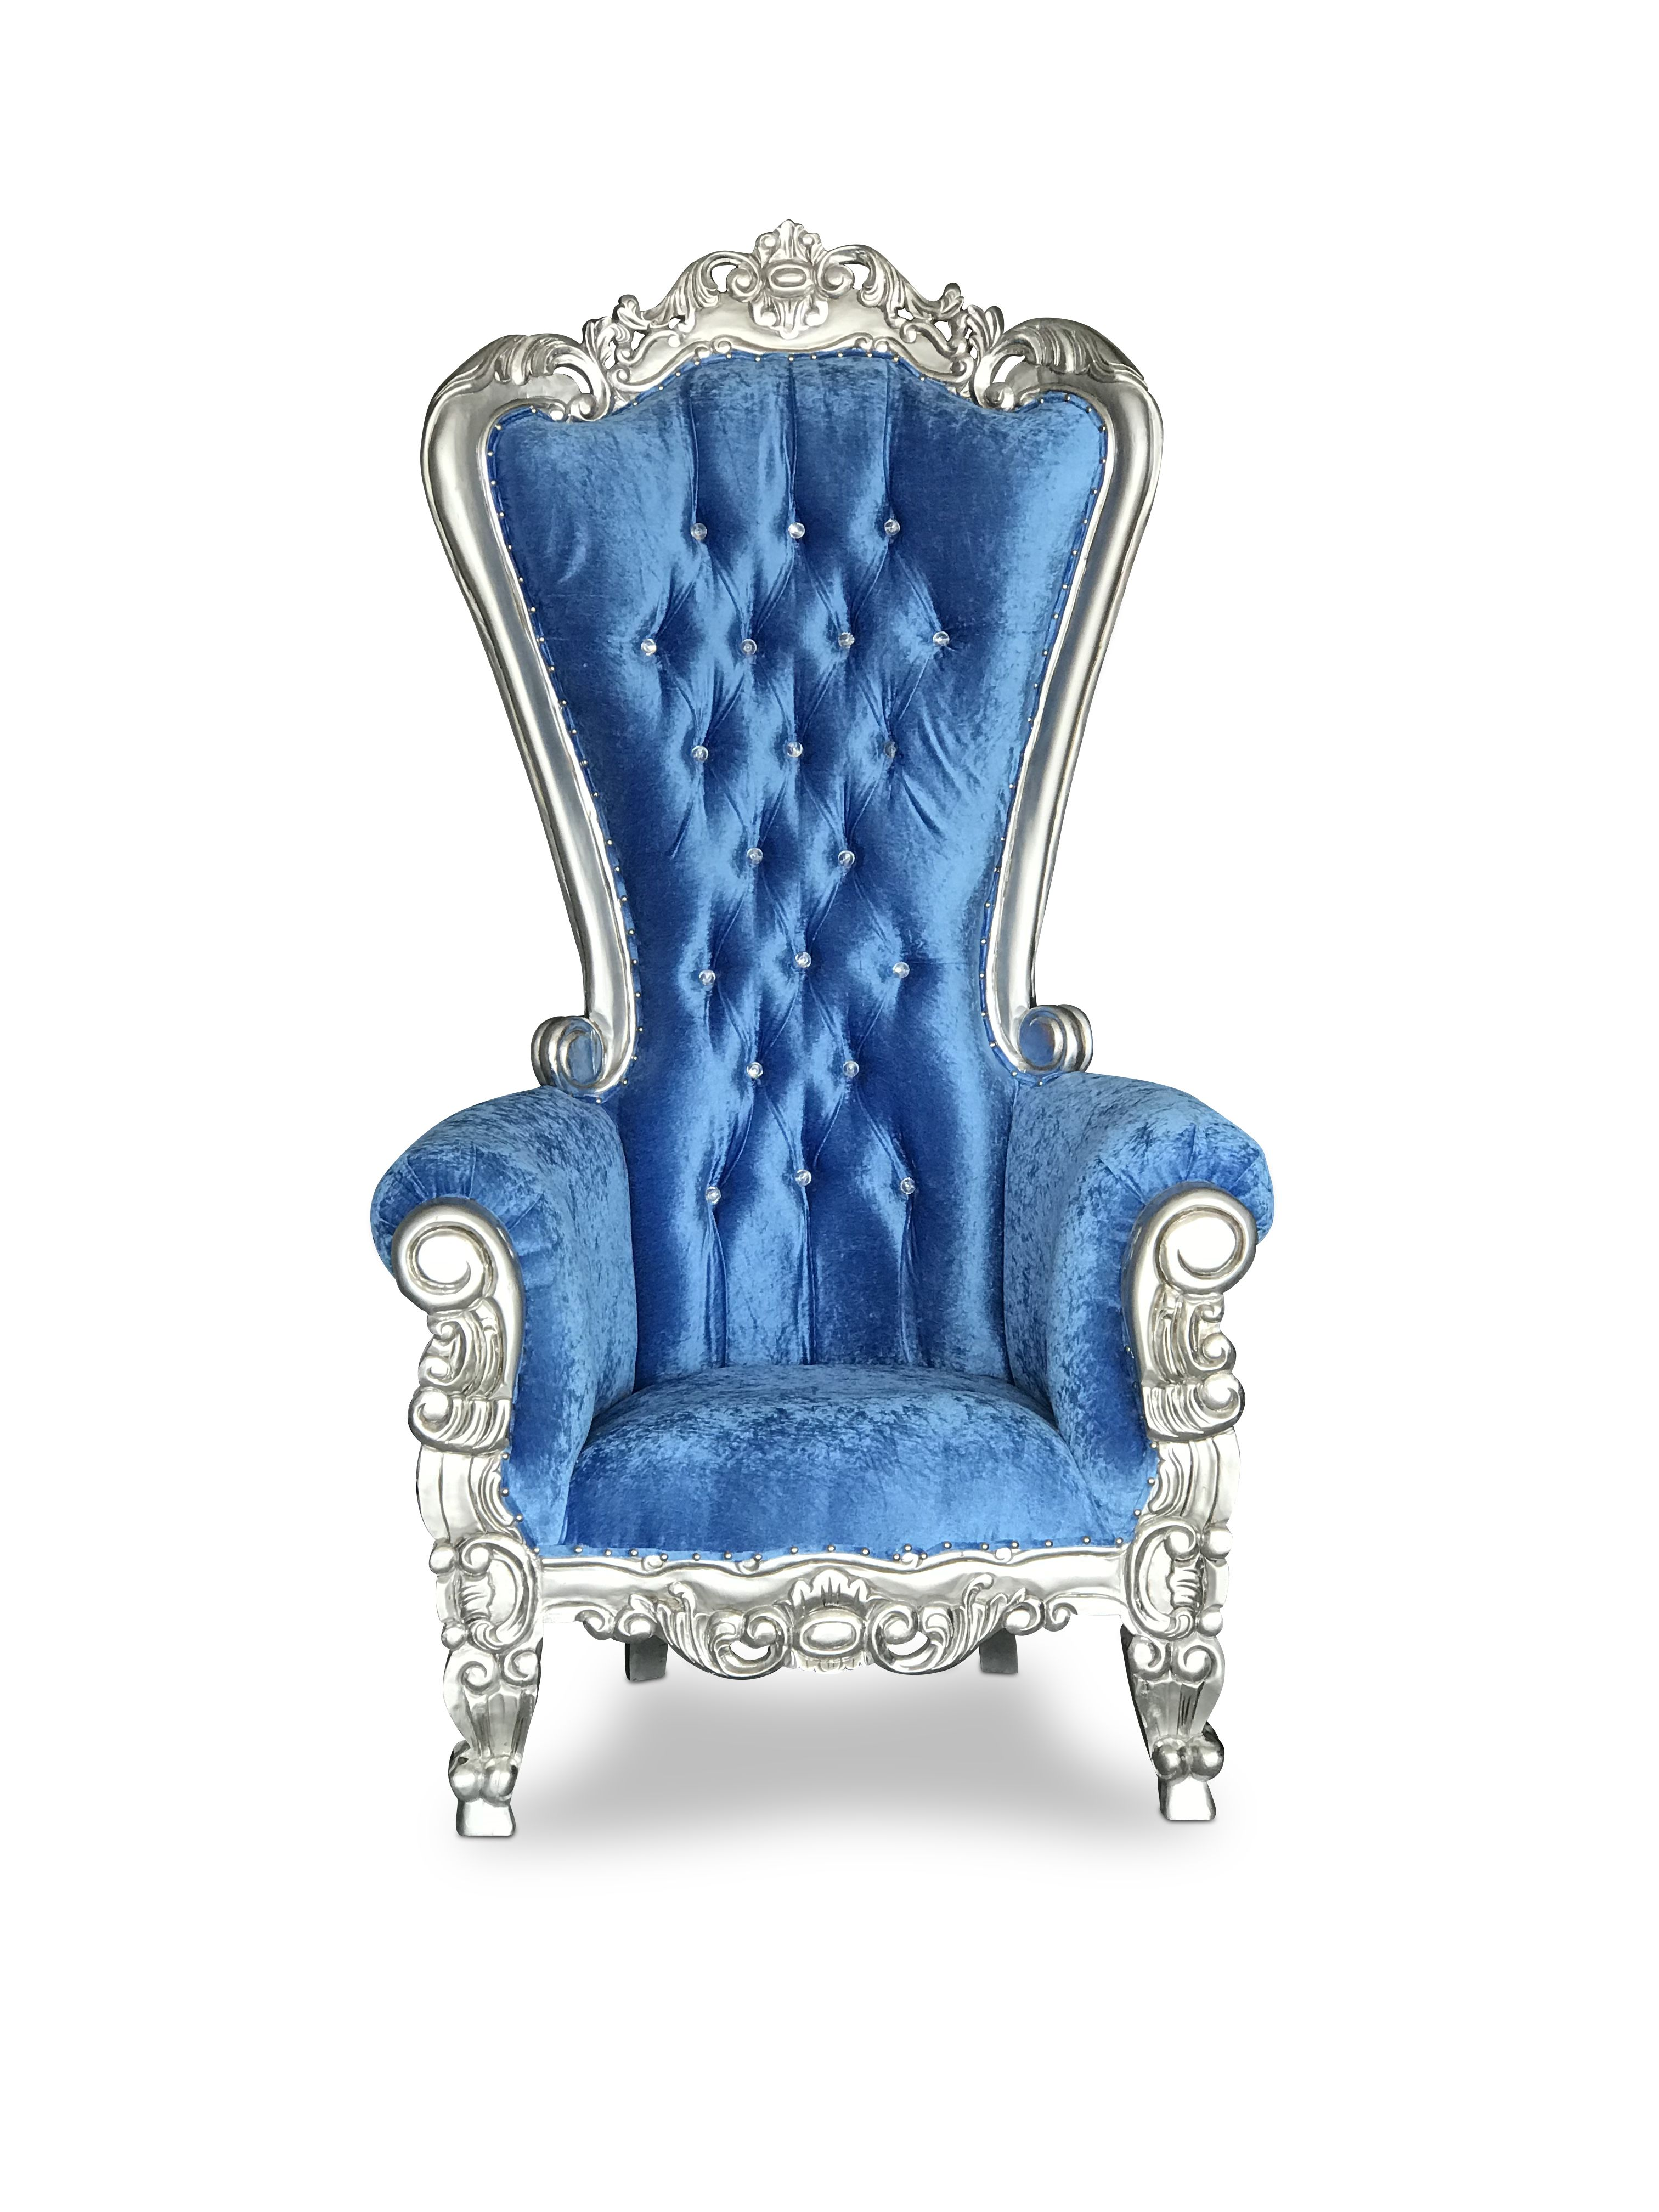 Chiseled Perfections Royal King Queen Throne Chairs Baroque Inspired Furniture Throne Chair Unique Baby Shower Themes King Queen